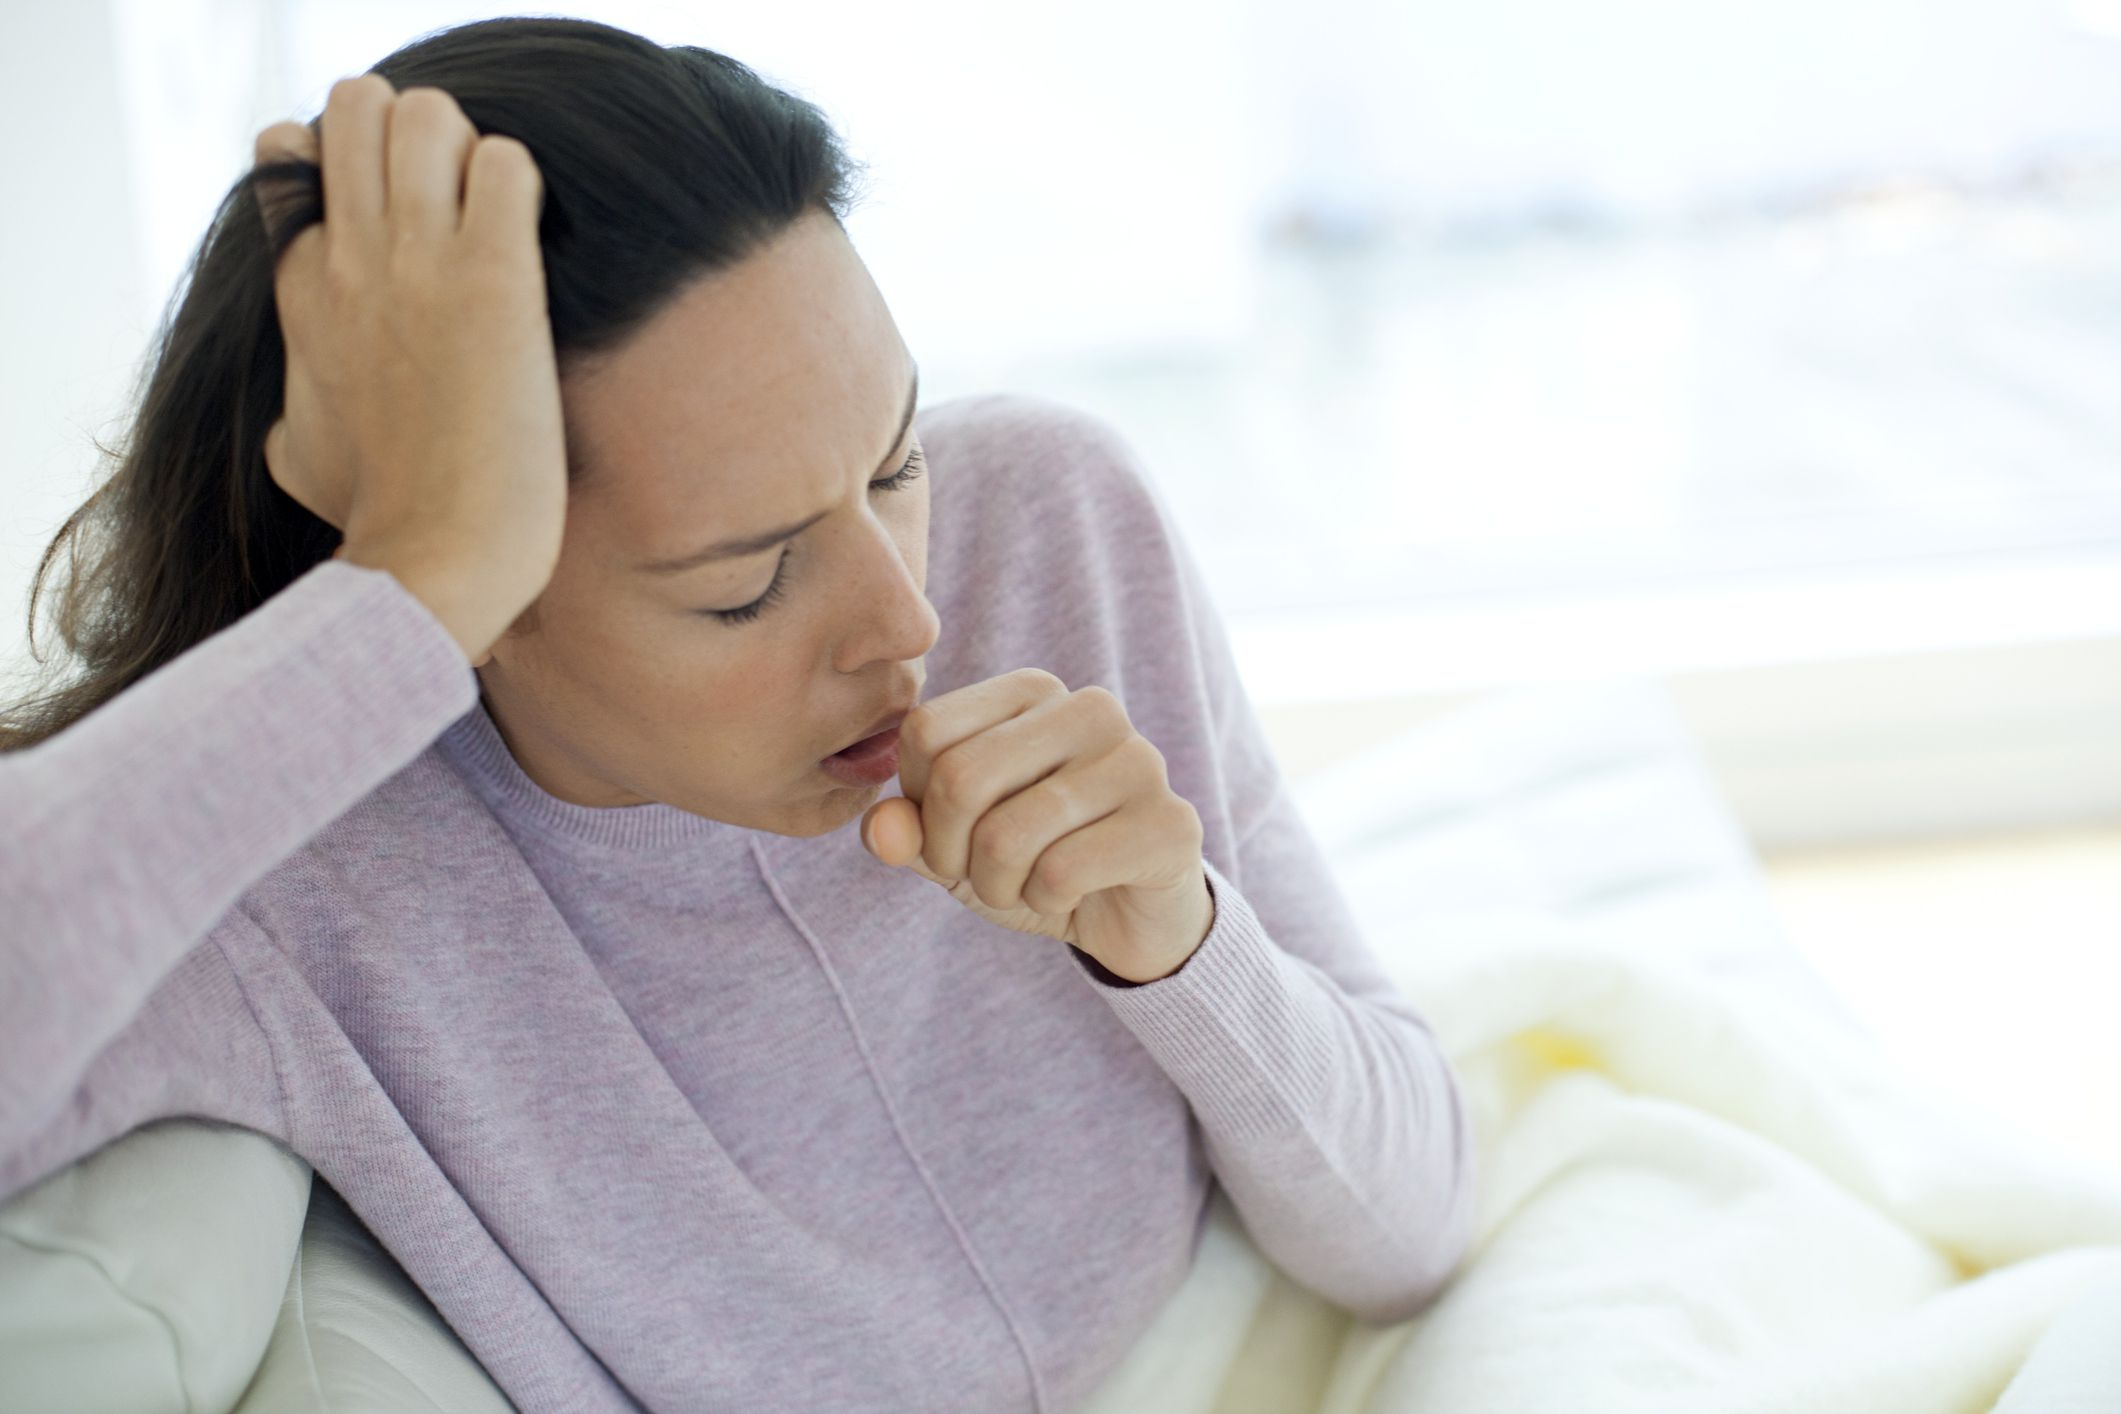 What is tylenol cold multi symptom nighttime young woman coughing ccuart Image collections